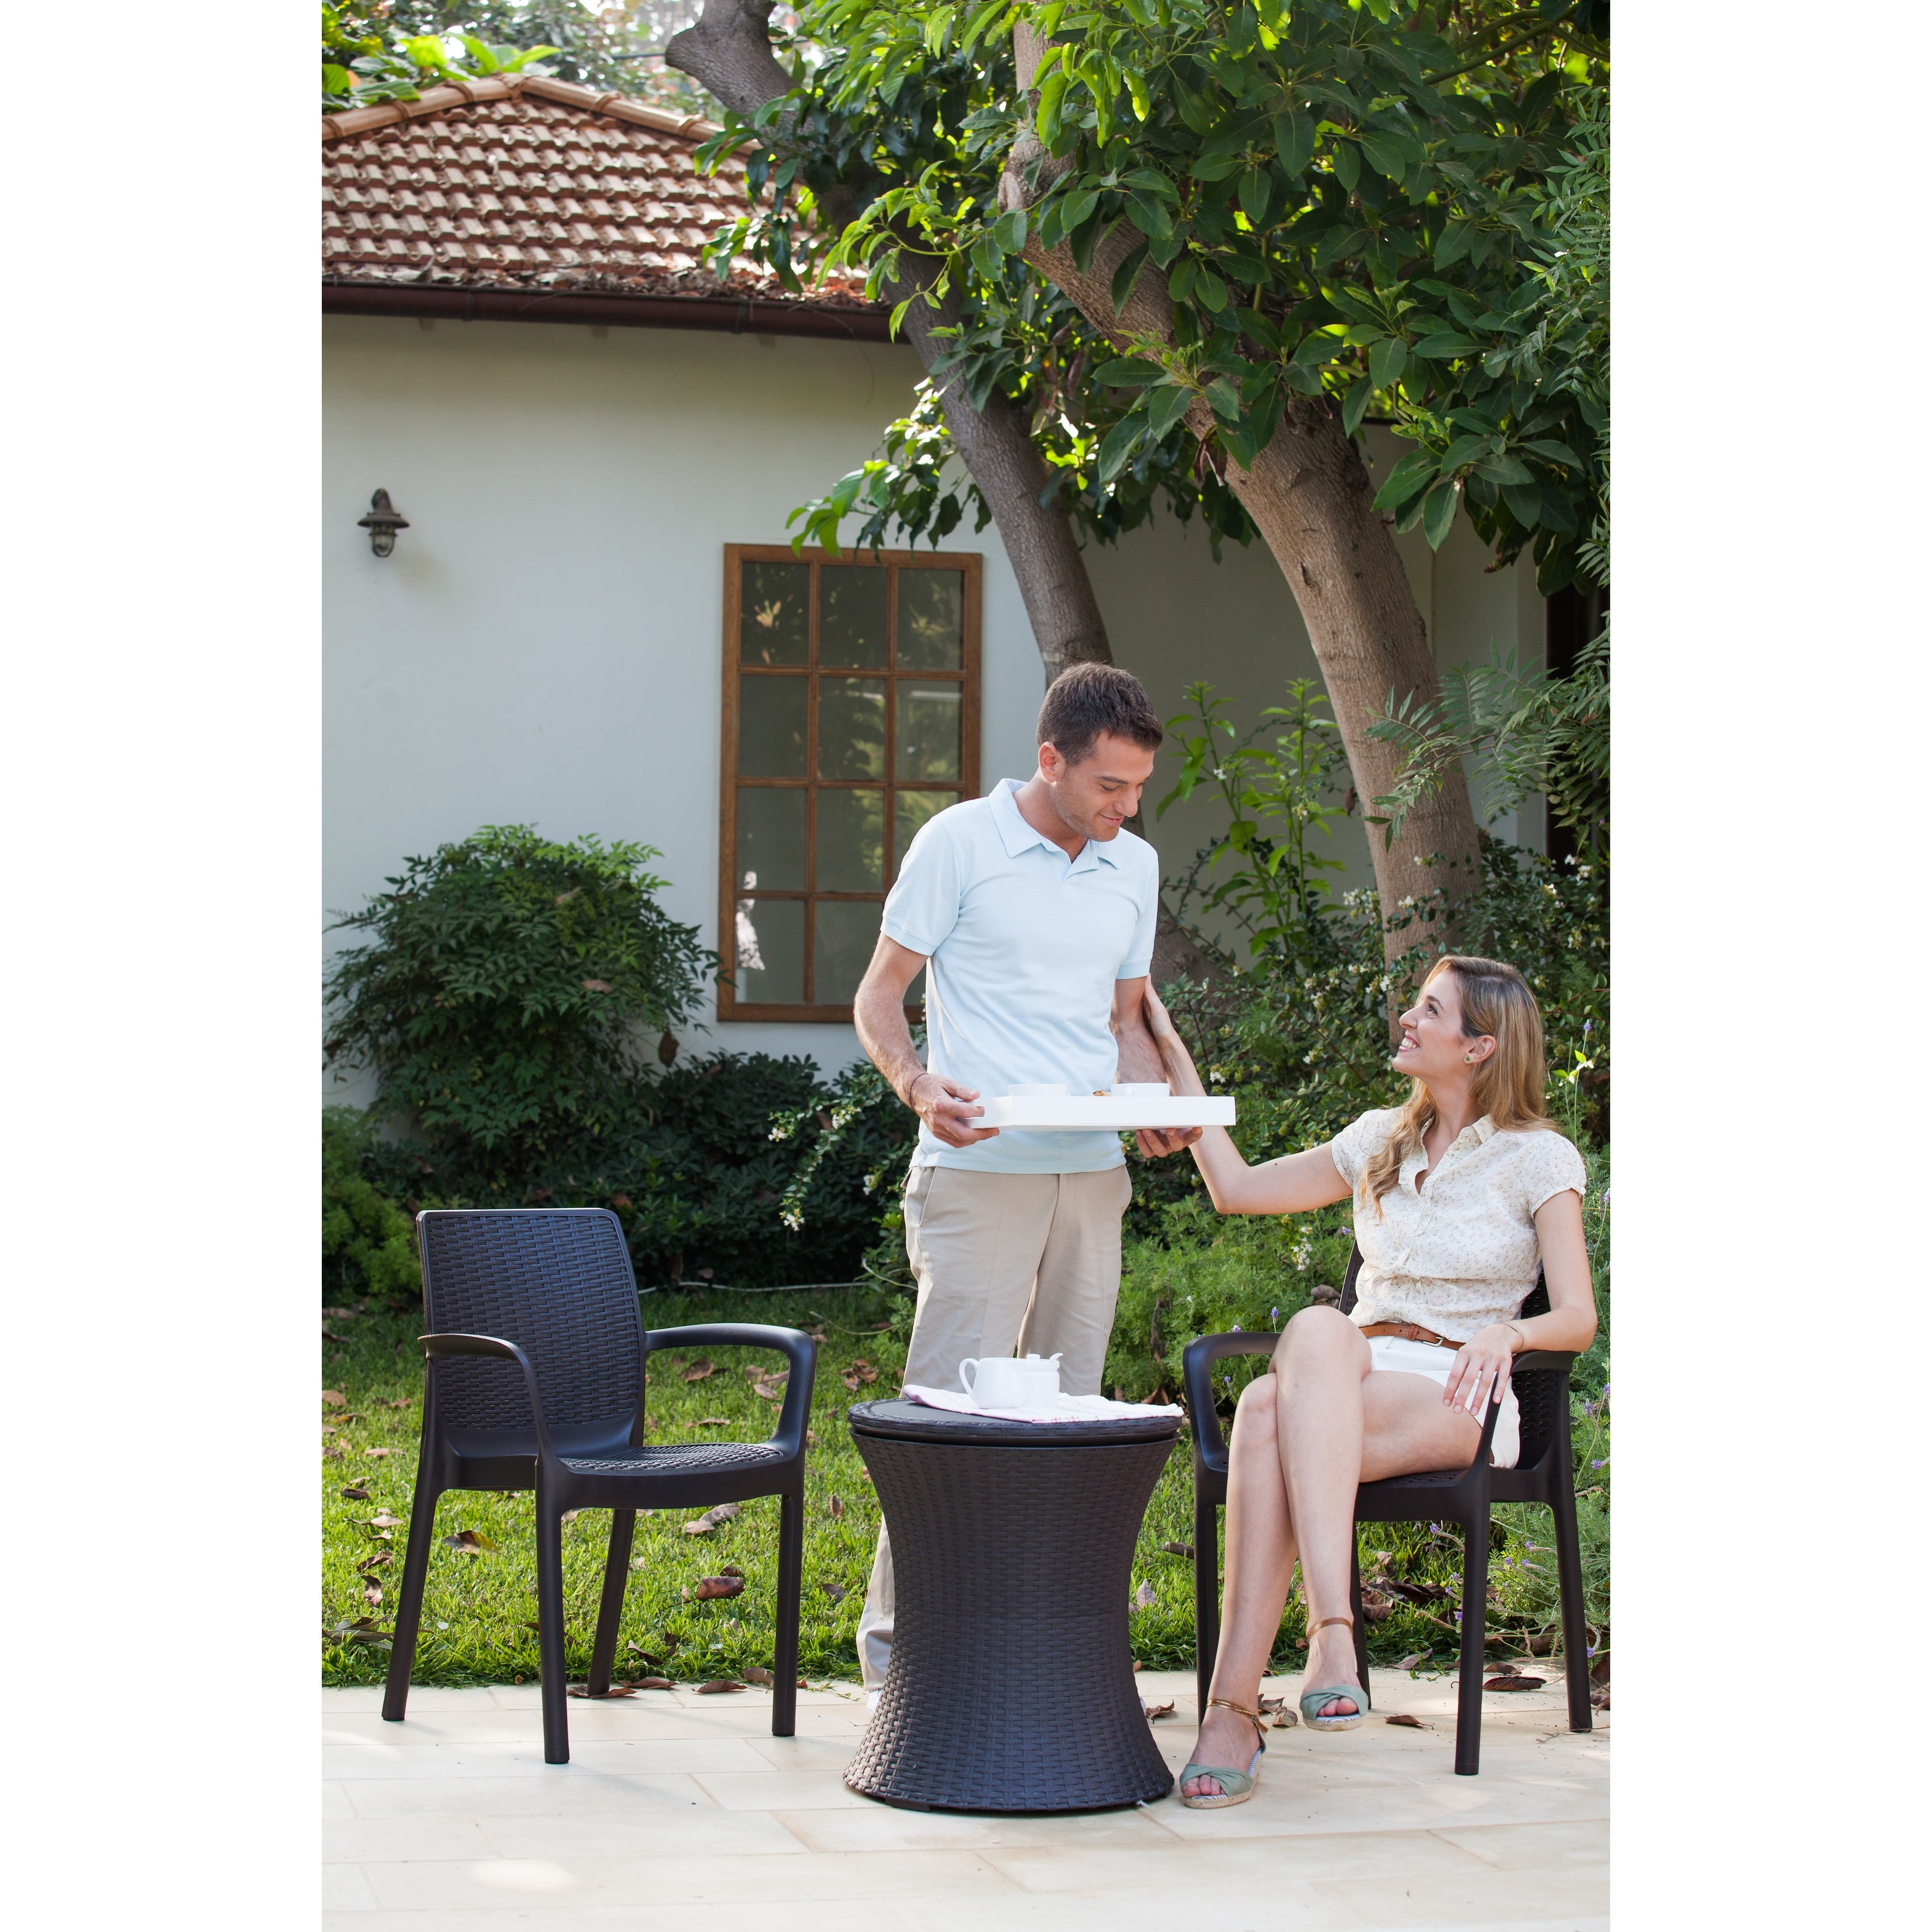 Keter Pacific Cool Bar Brown Wicker Outdoor Ice Cooler Table